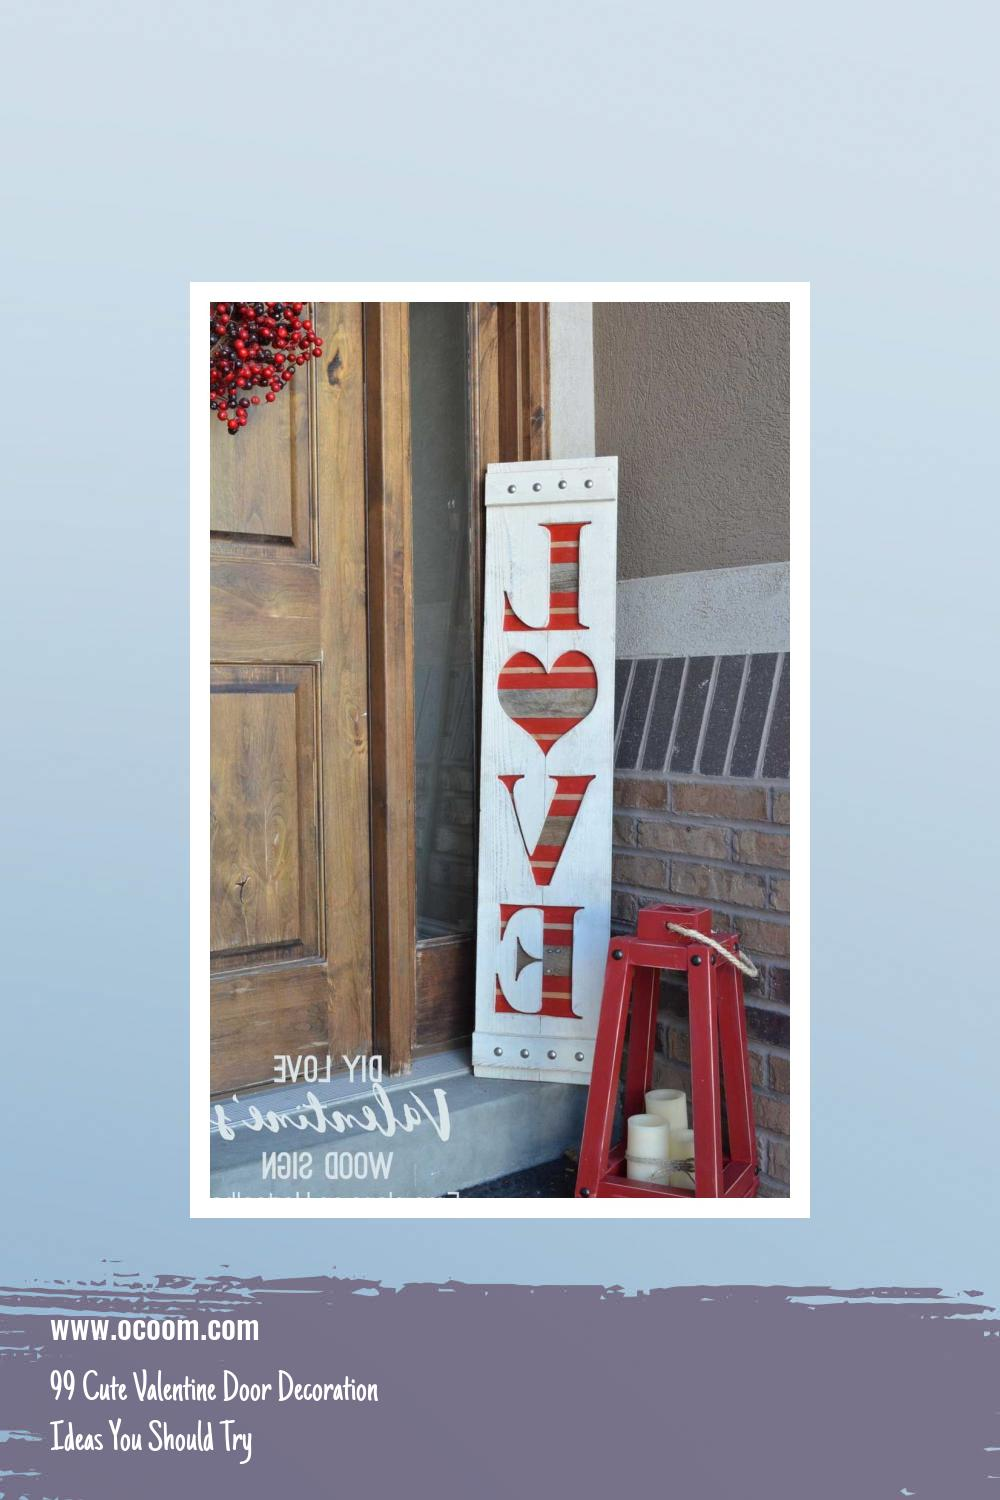 99 Cute Valentine Door Decoration Ideas You Should Try 20